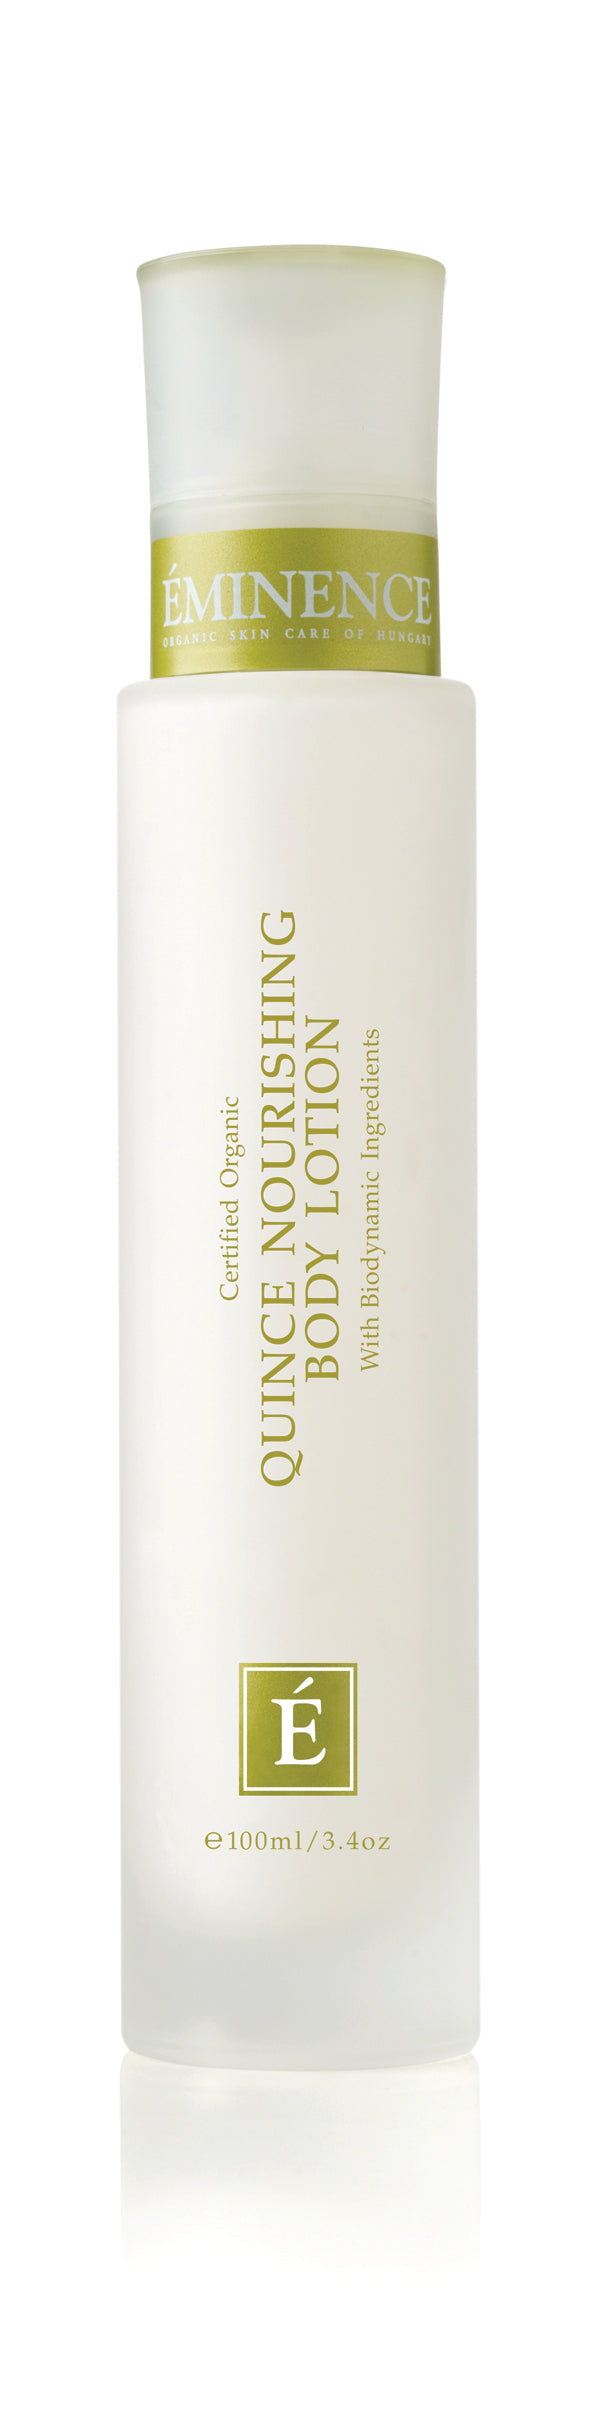 Quince Nourishing Body Lotion